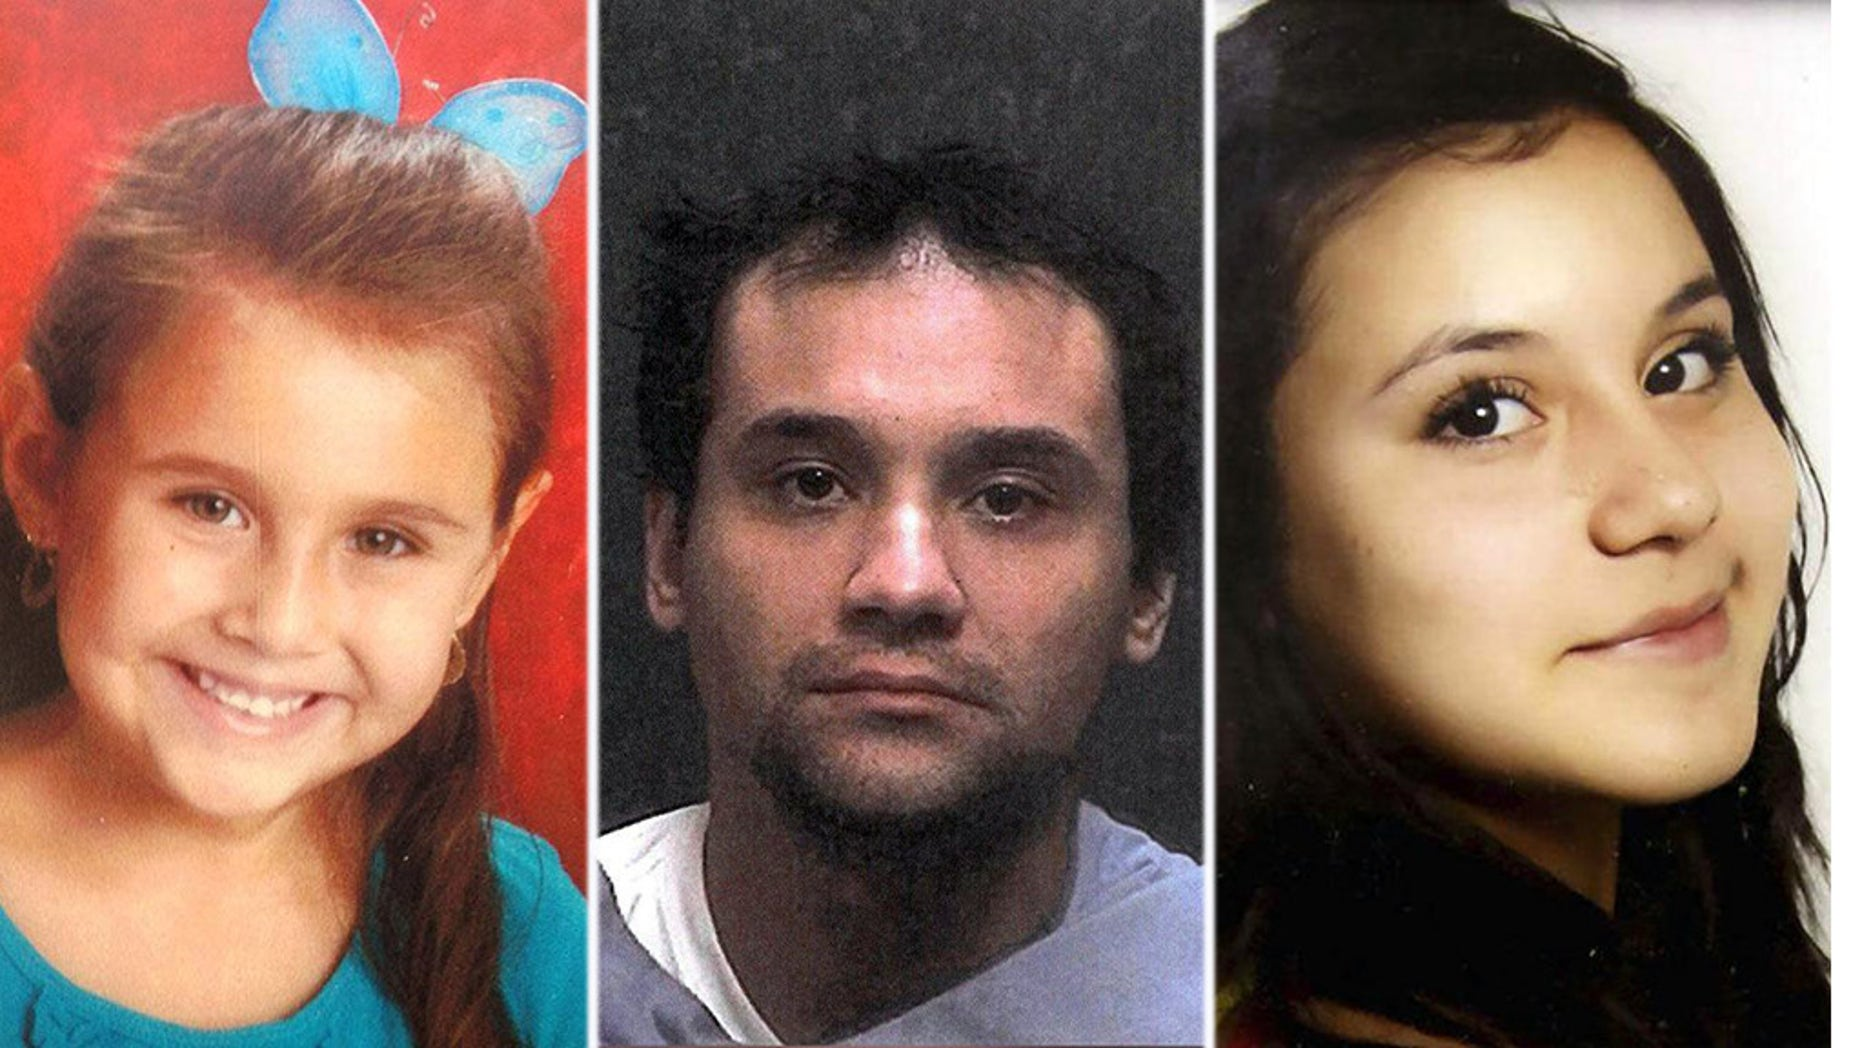 Christopher Matthew Clements [center] was indicted in the kidnapping and killing of Isabel Celis [left] and Maribel Gonzales [right] who went missing.